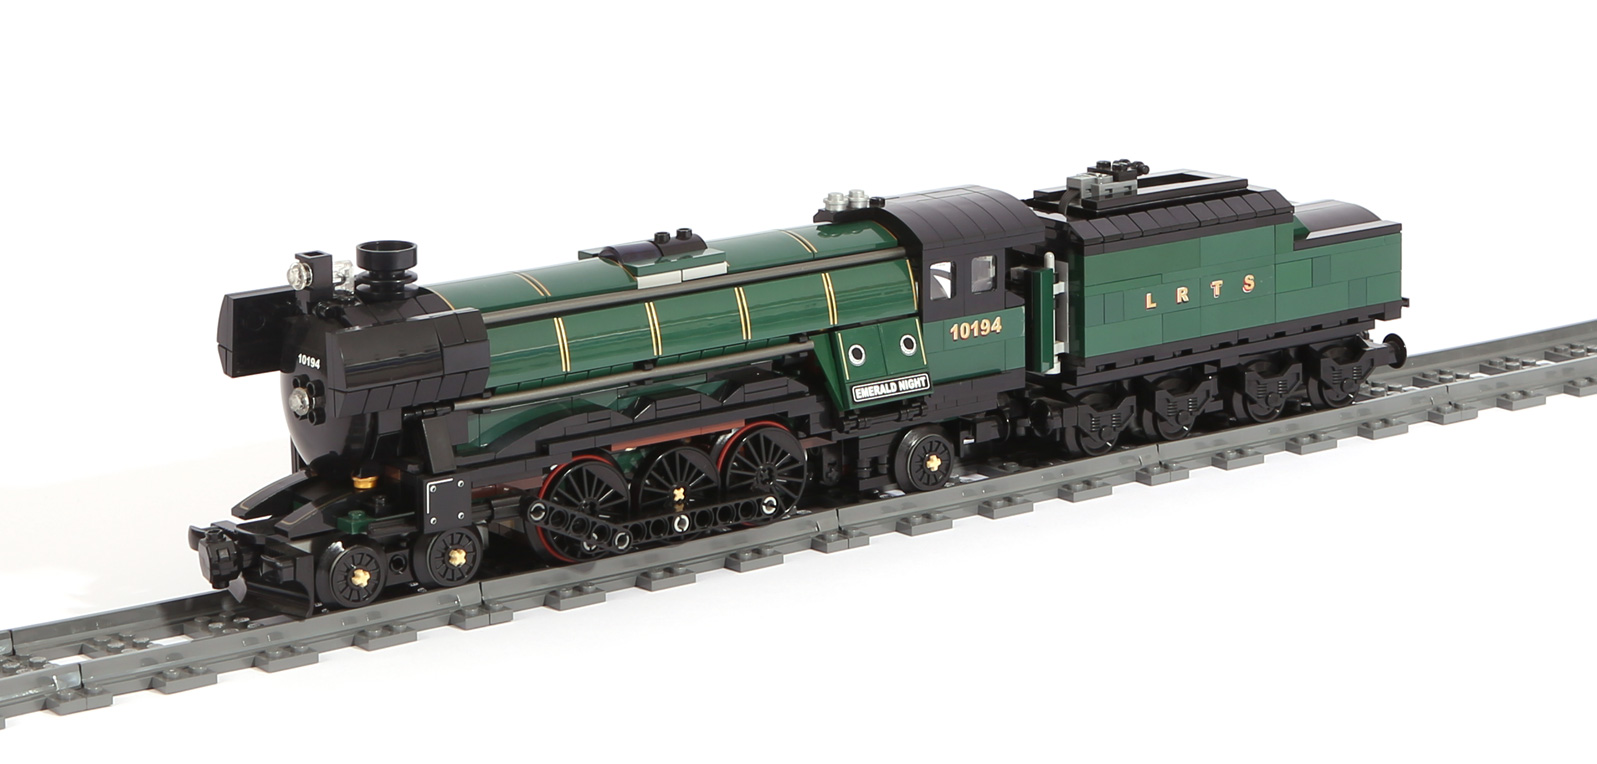 Dampflok-Emerald Express (Steam Train) – Original LEGO Set 10194